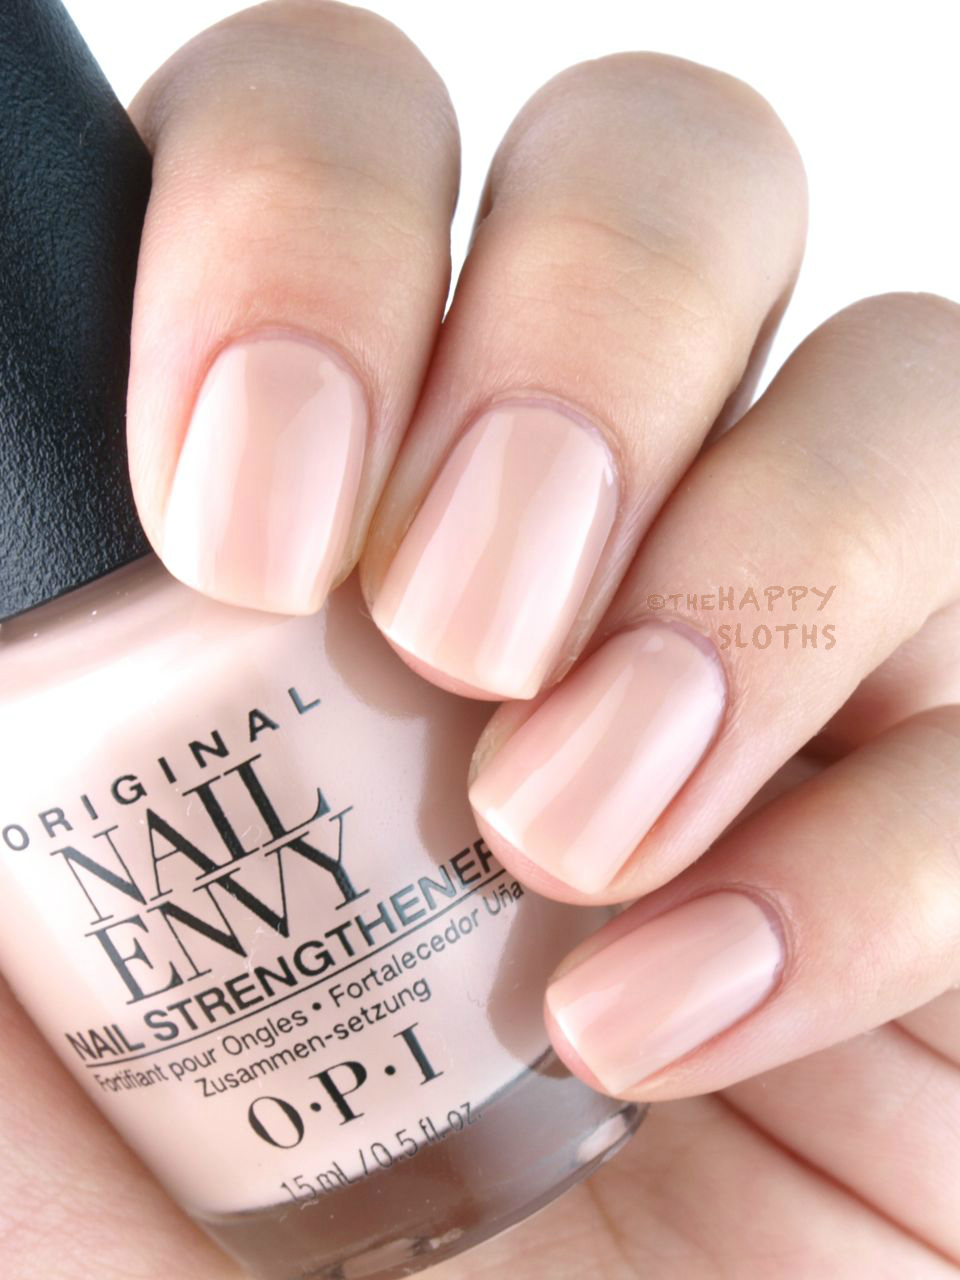 New Opi Nail Envy Nail Strengthener Strength Color